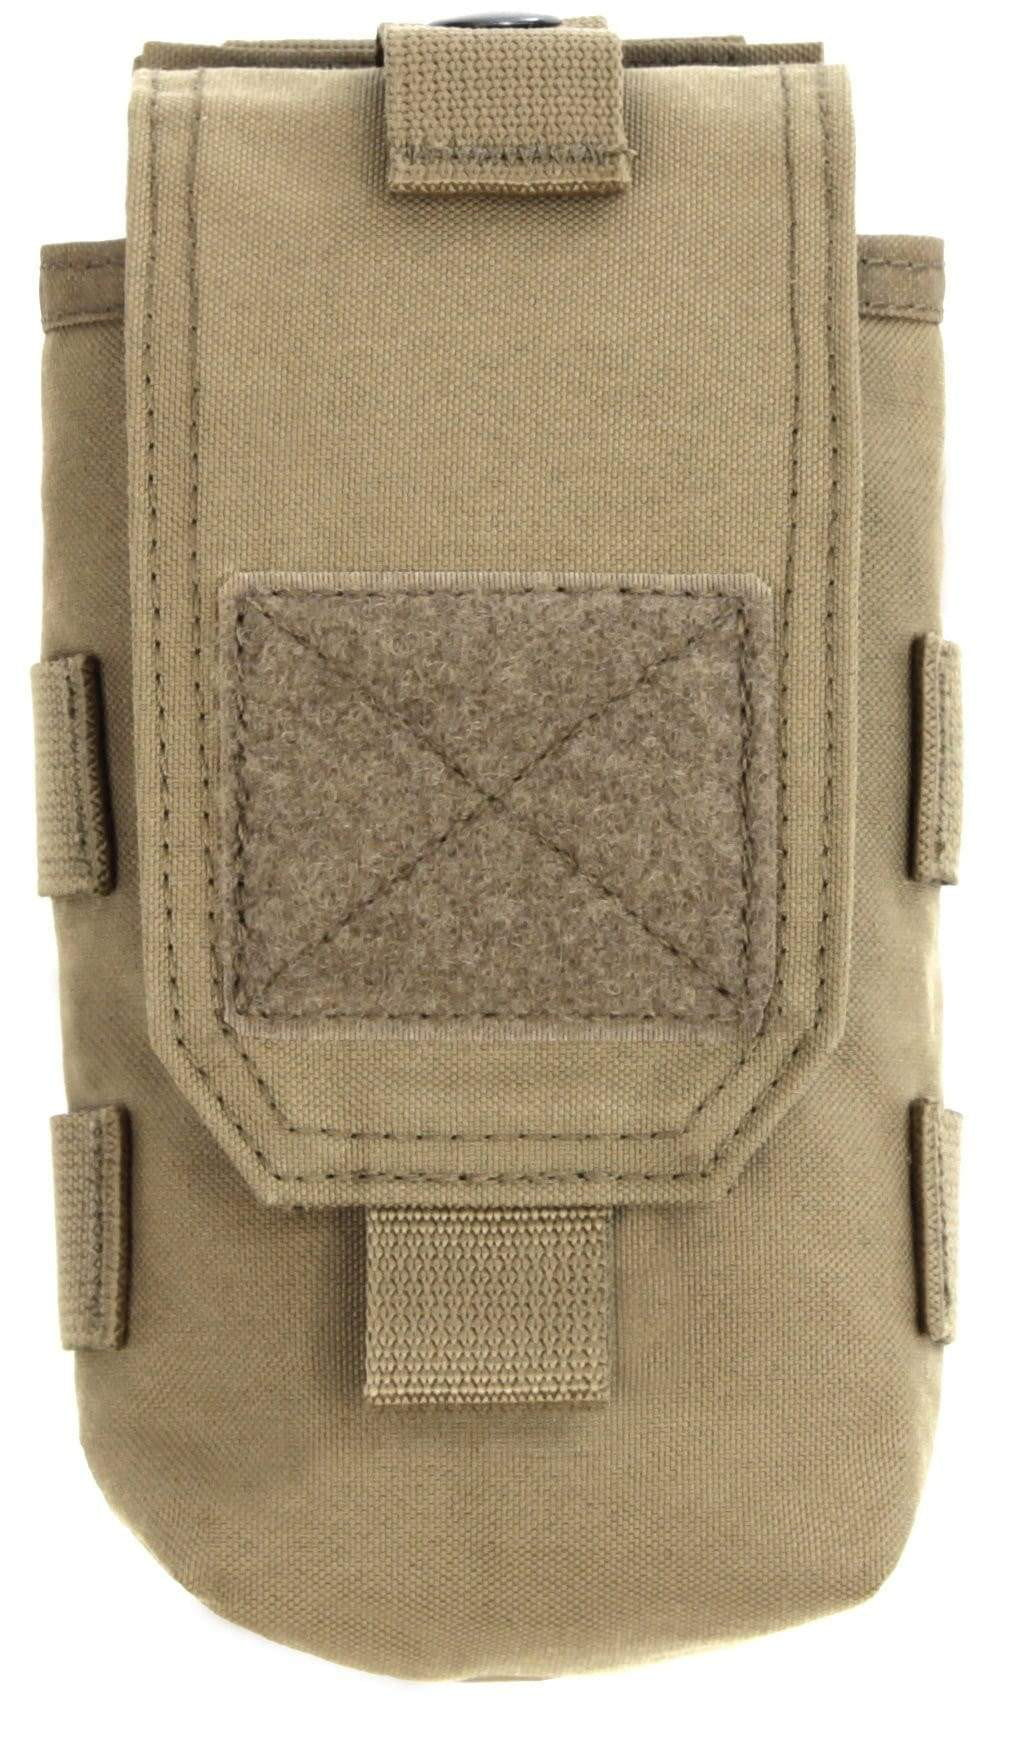 Warrior Assault Systems Individual First Aid Kit IFAK - CHK-SHIELD | Outdoor Army - Tactical Gear Shop